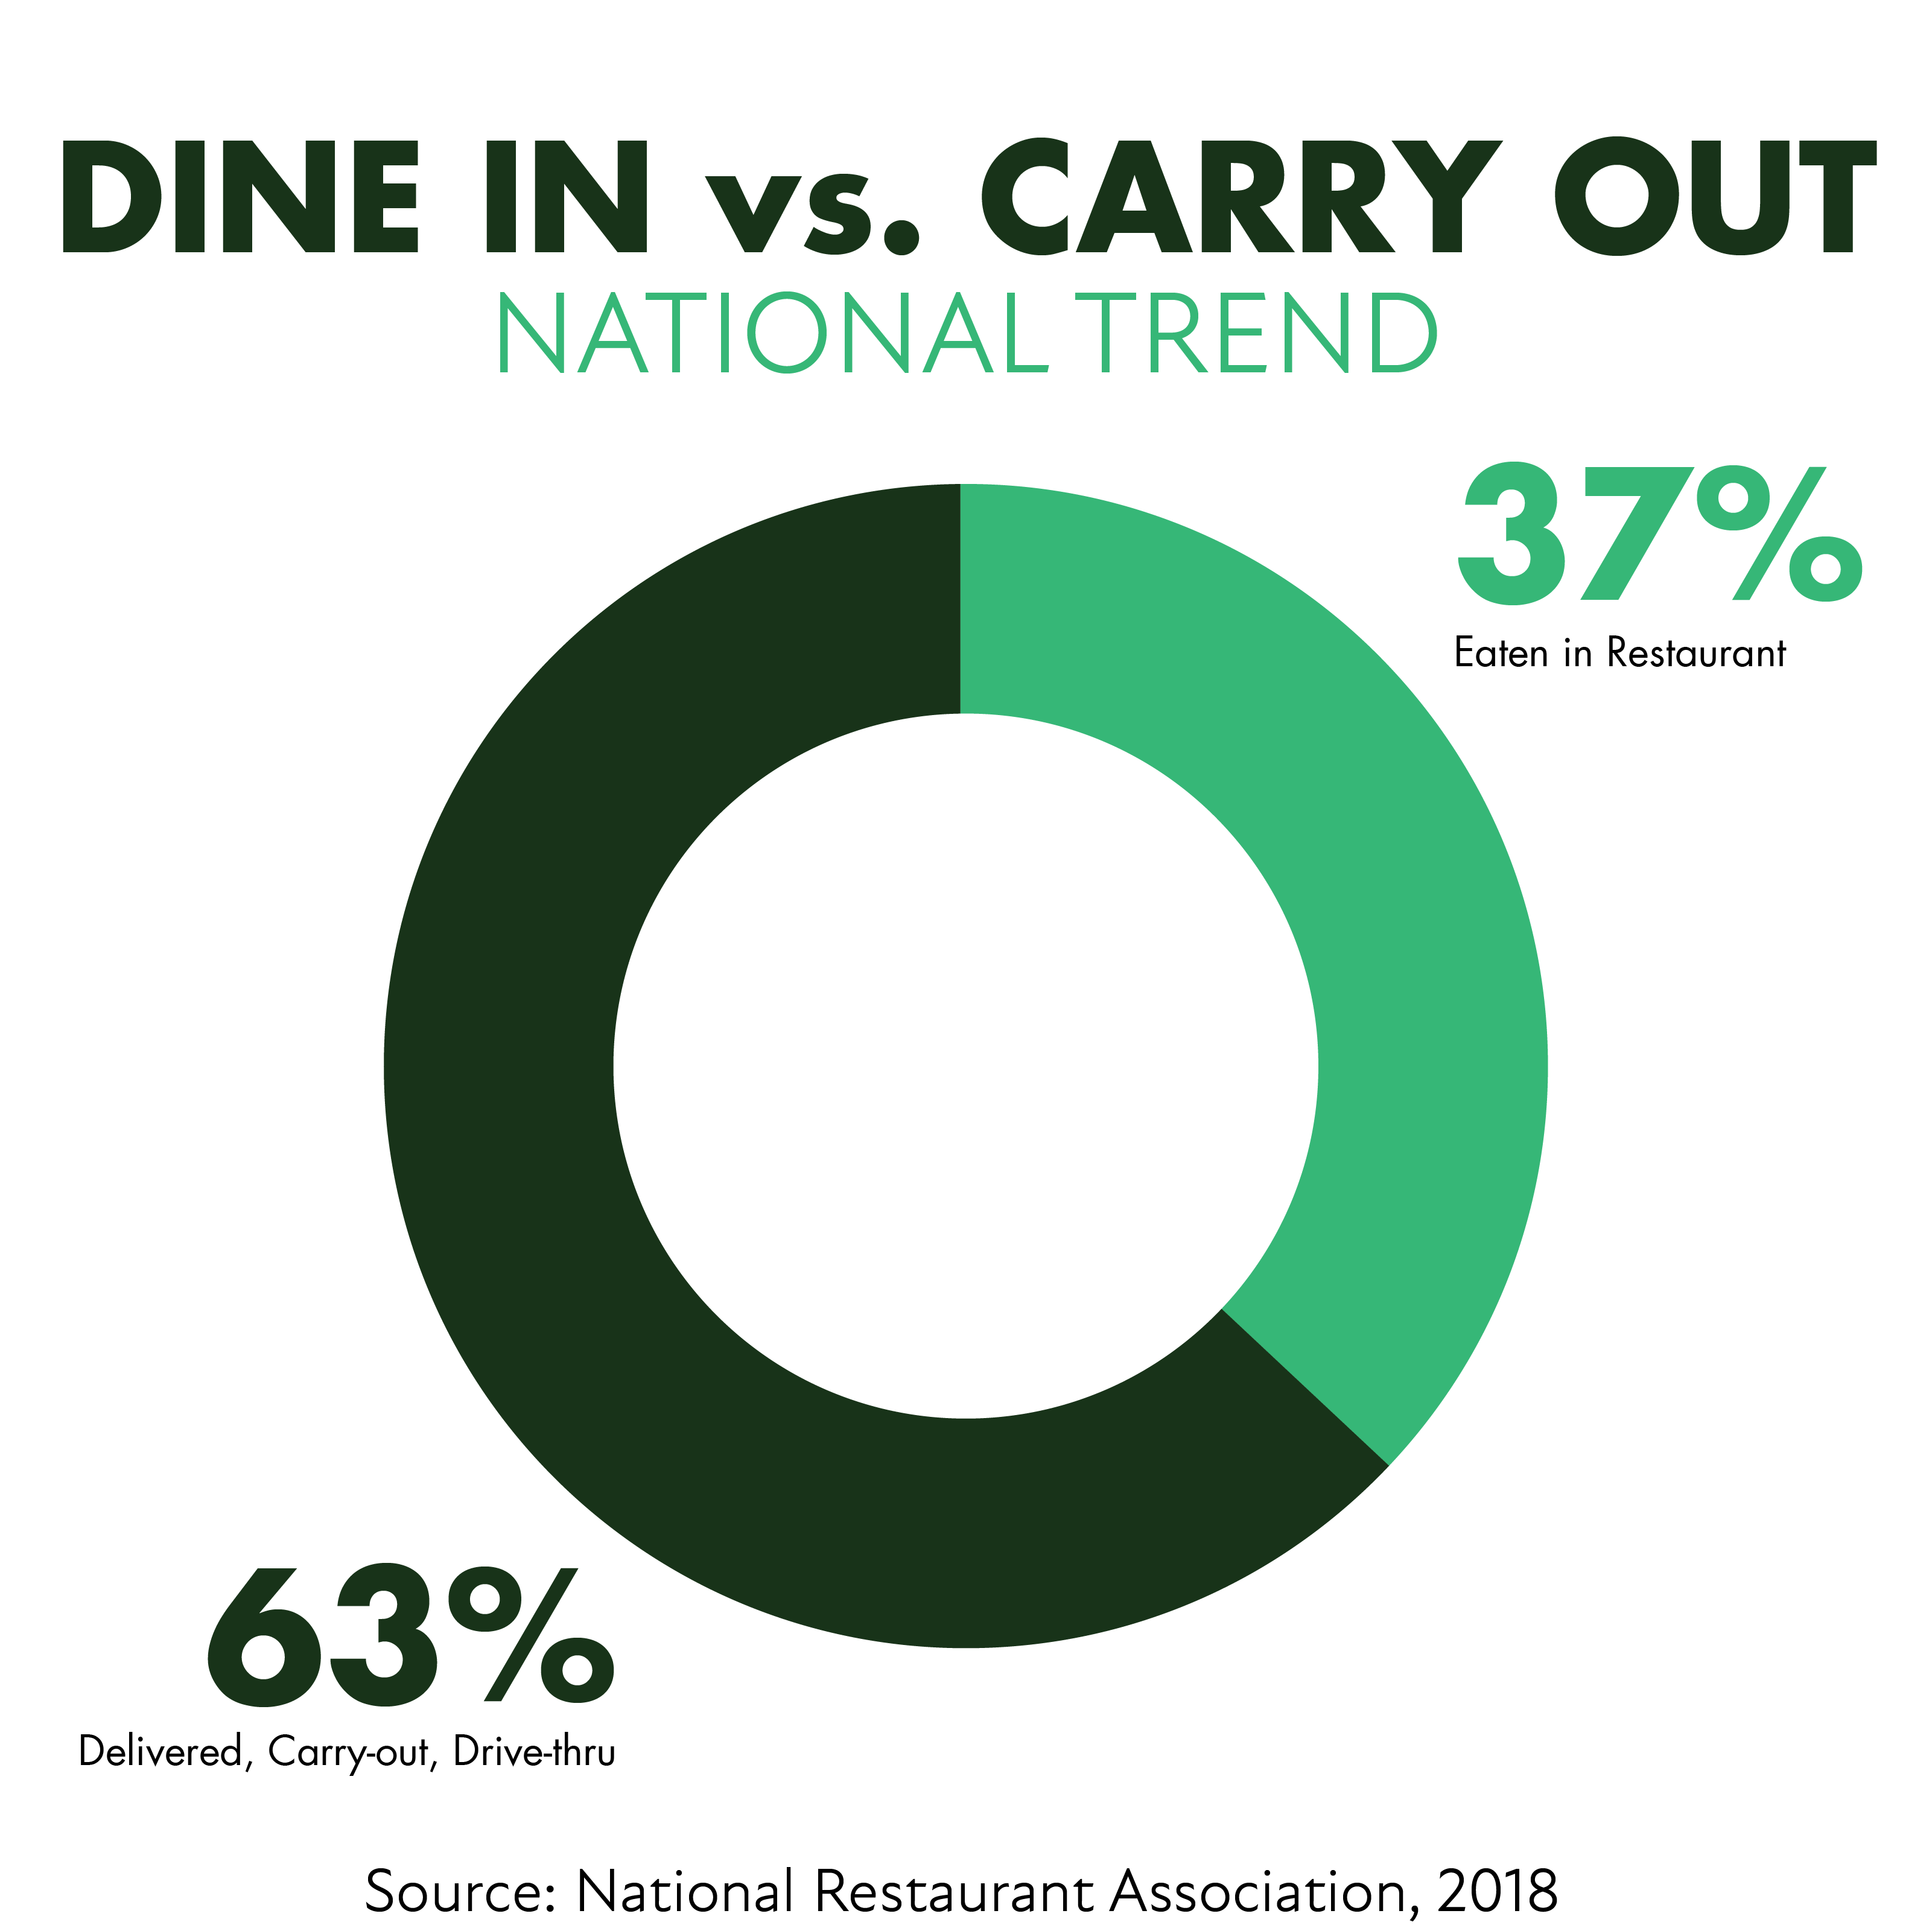 Dine in vs Carry out